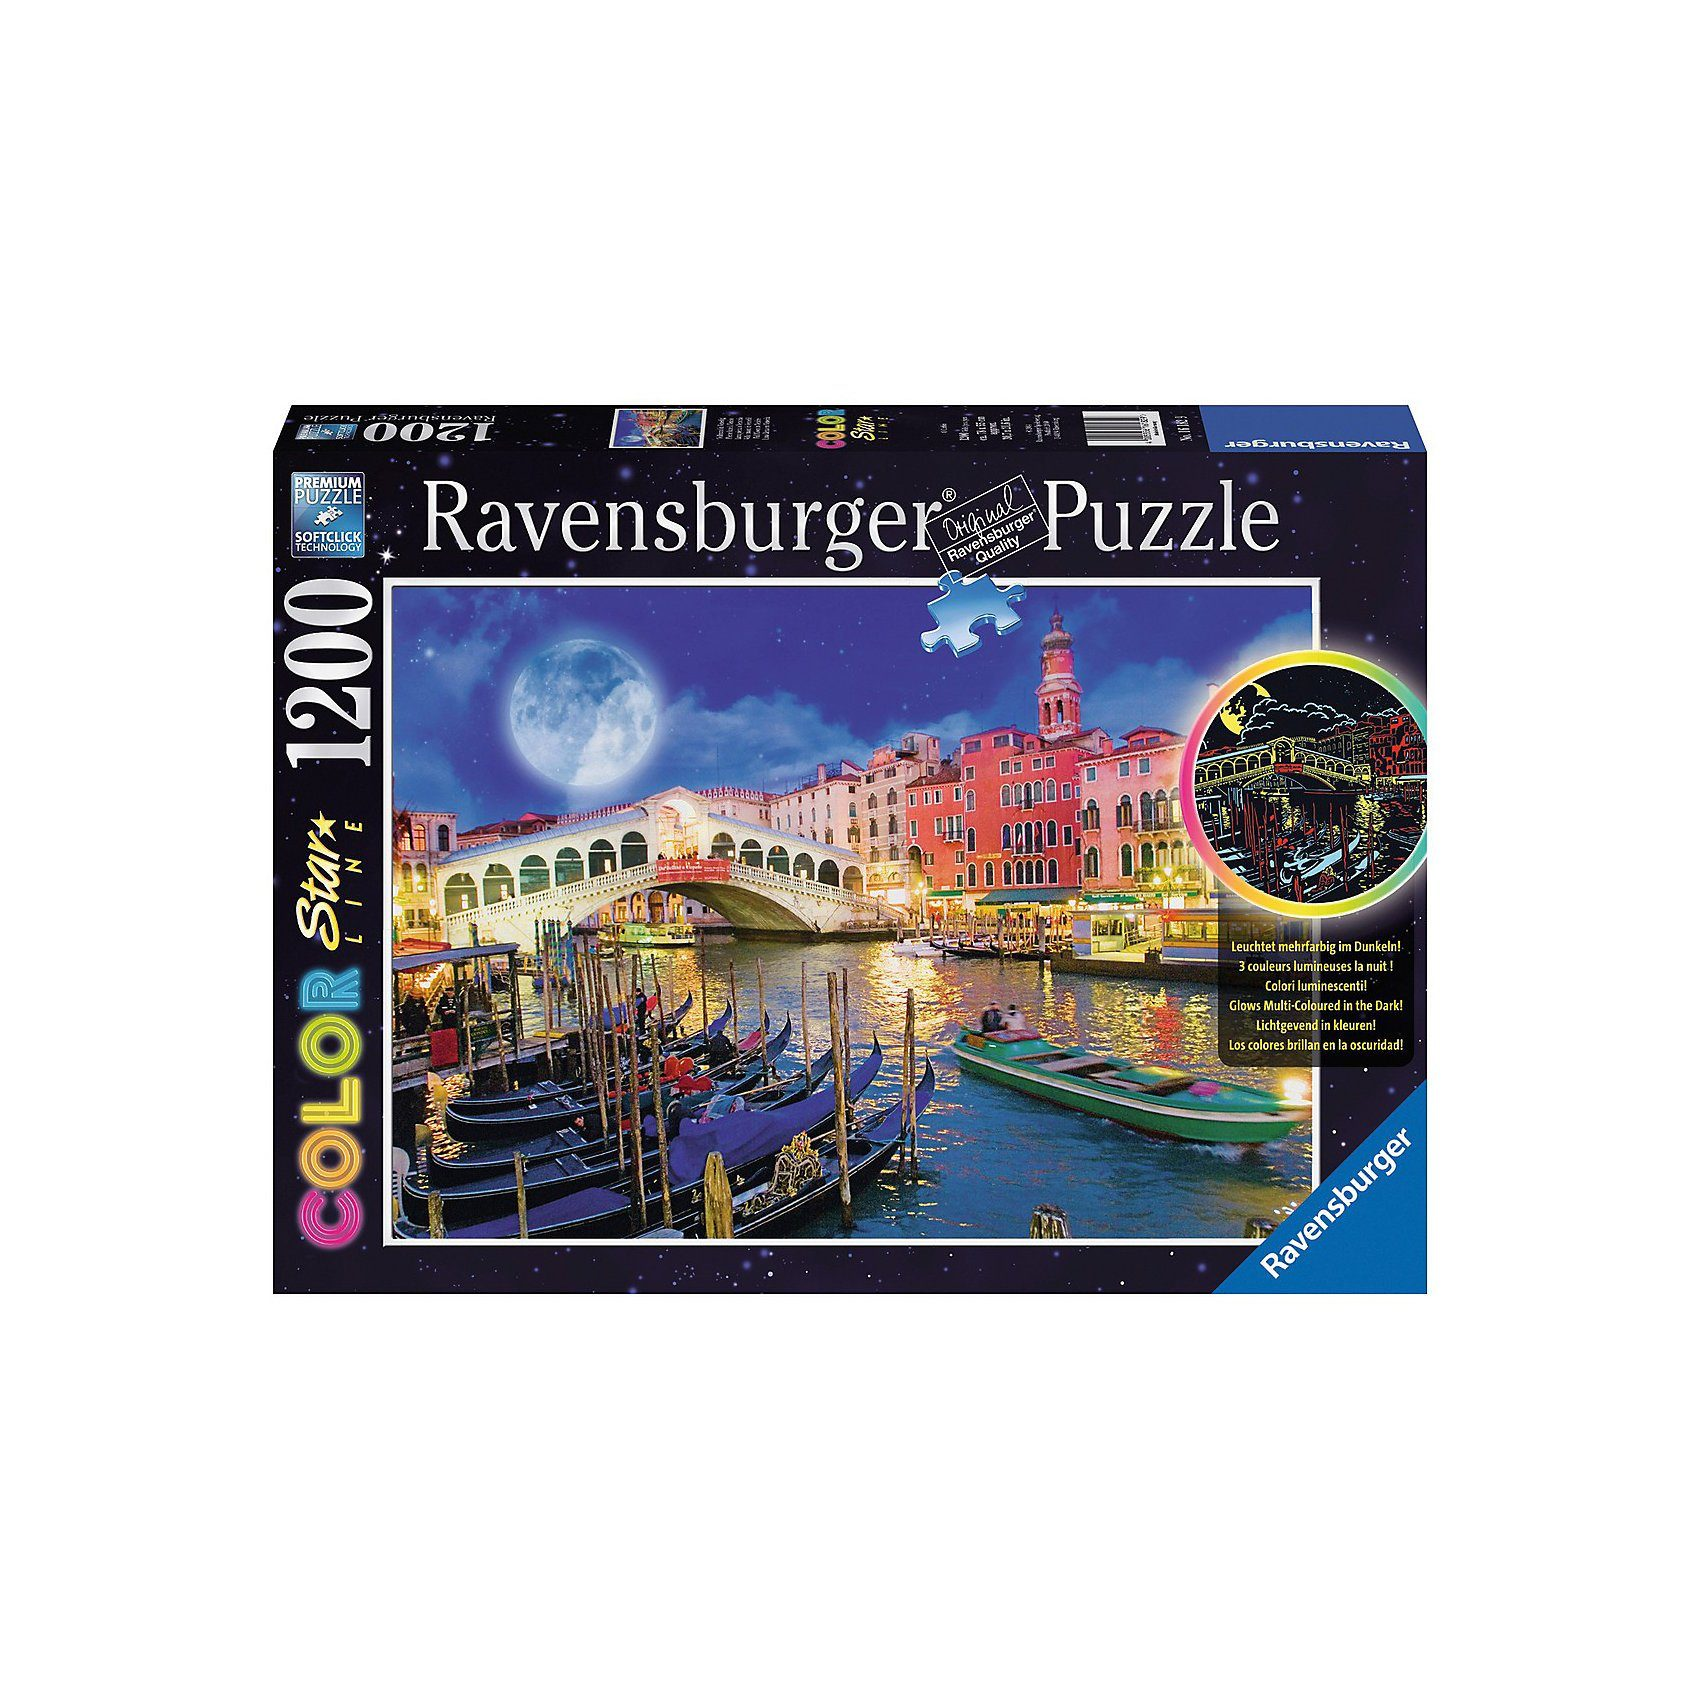 Ravensburger Puzzle Color Starline Vollmond in Venedig 1200 Teile